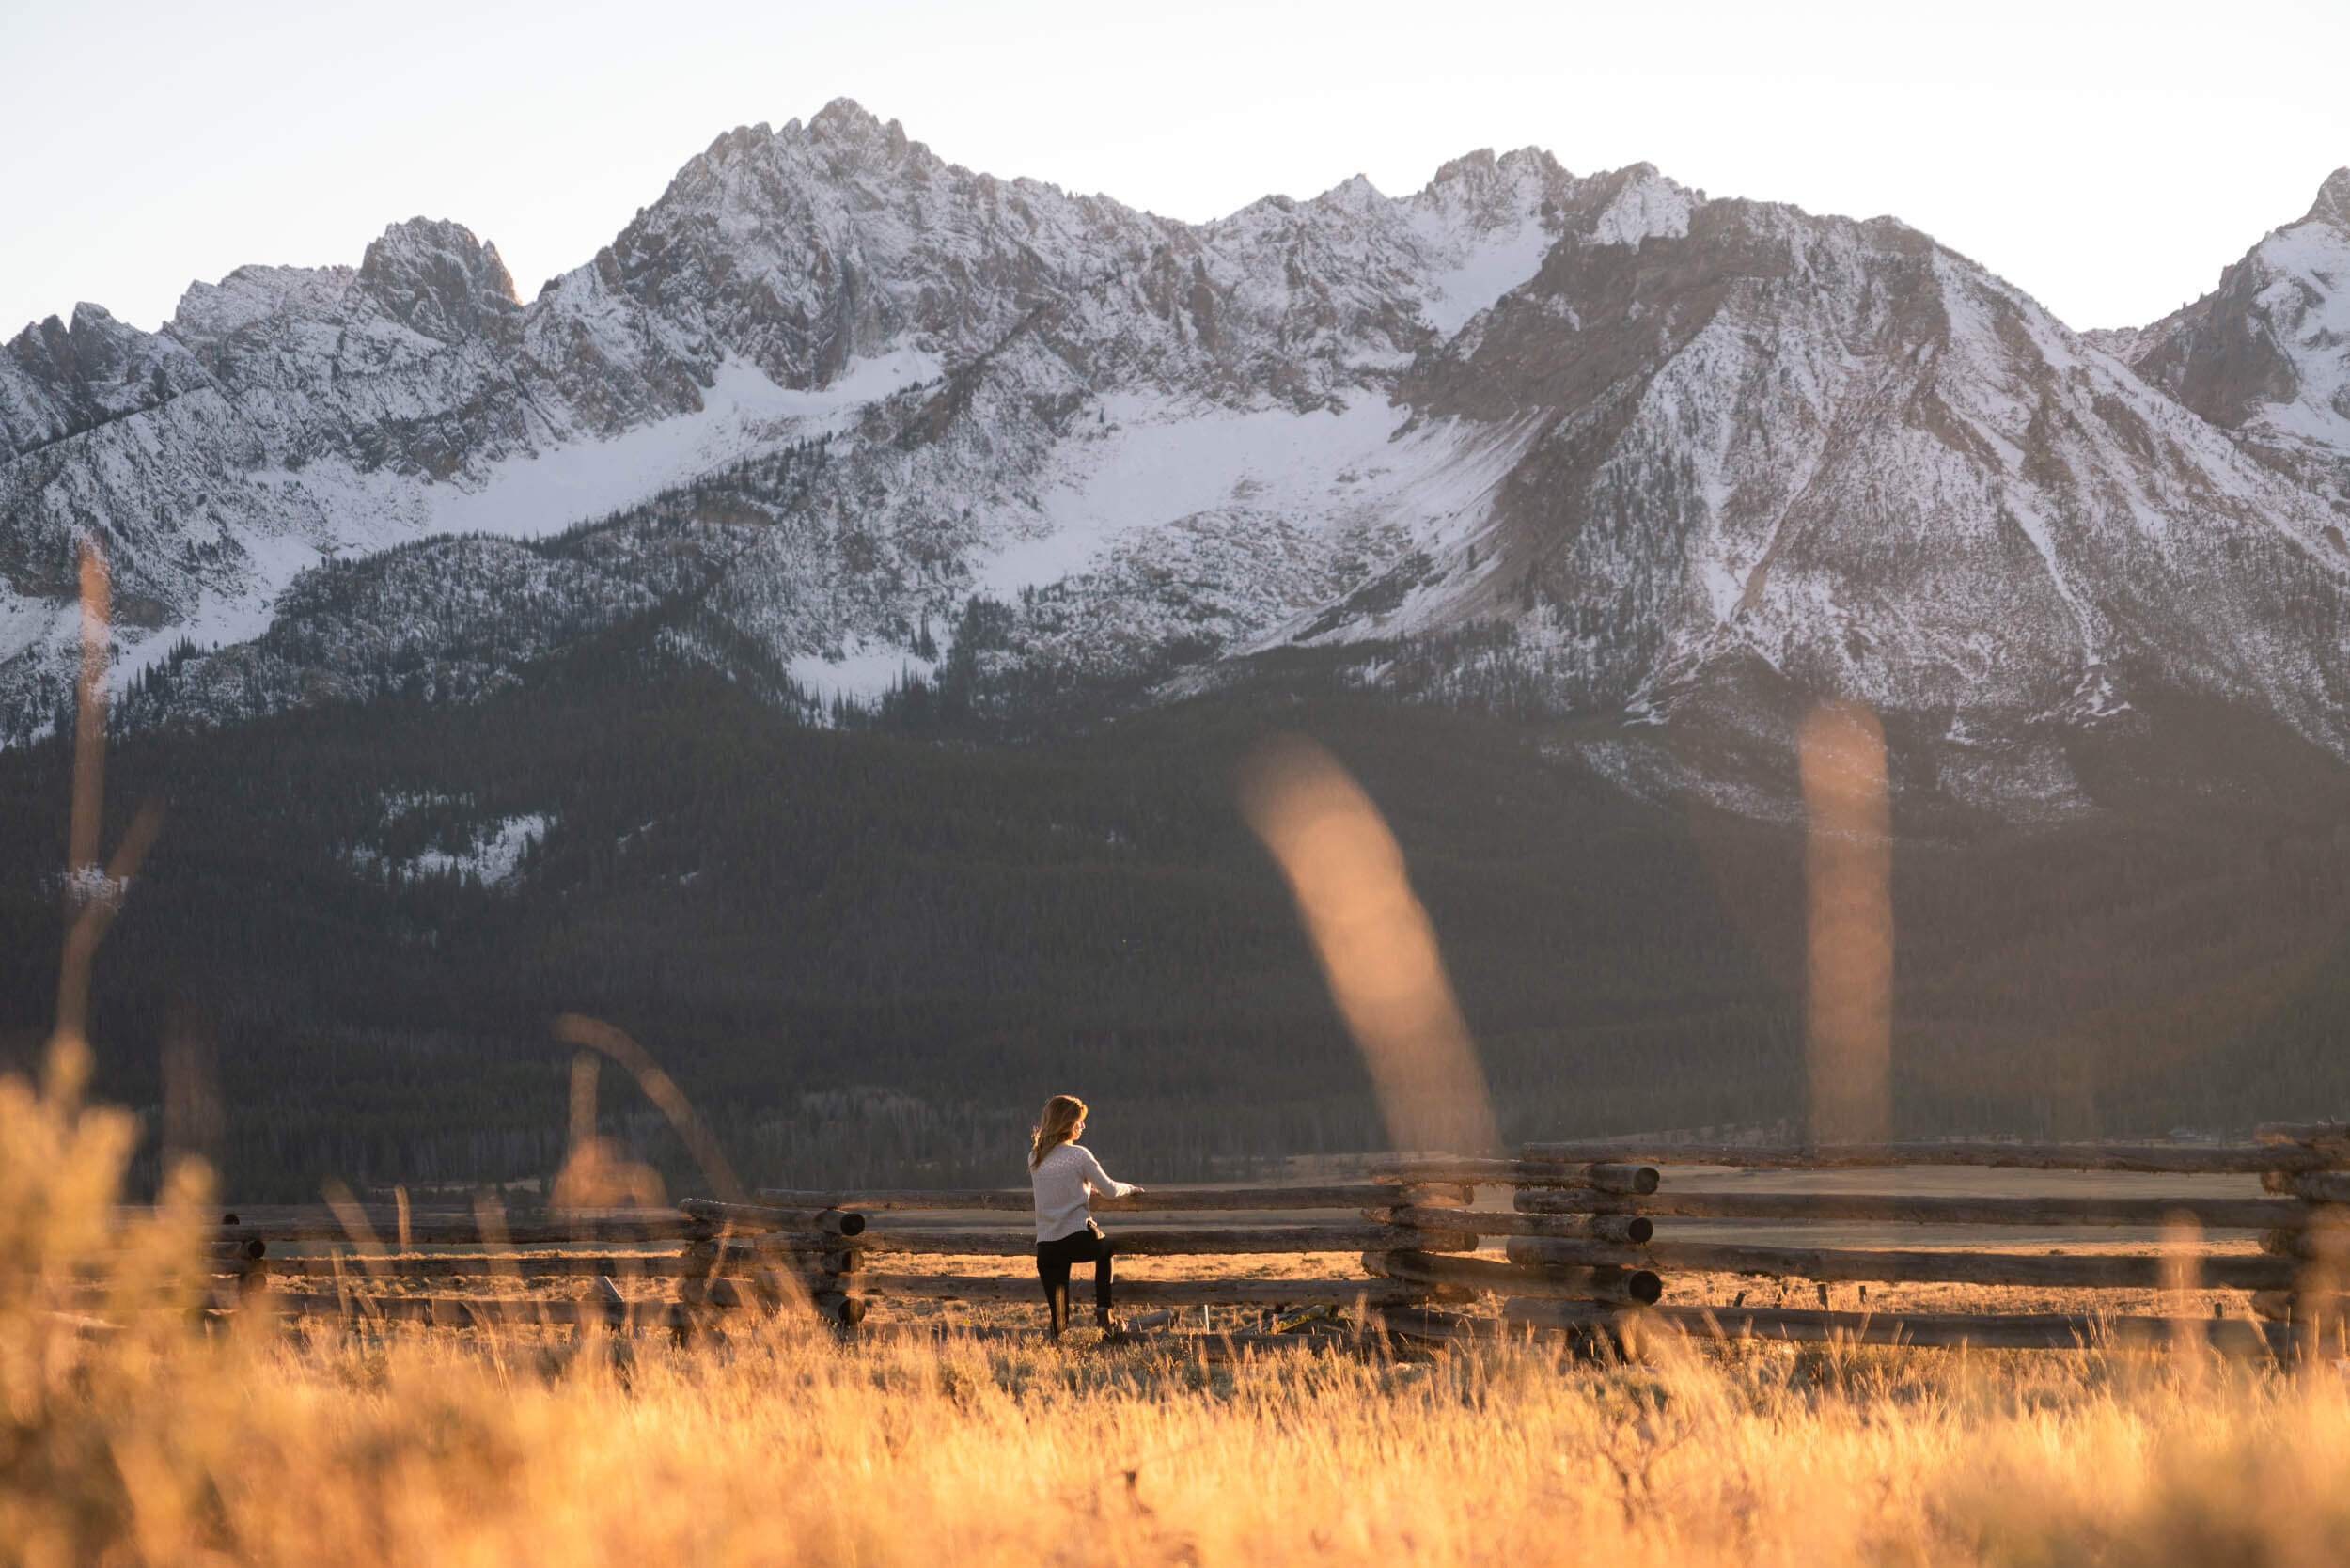 Taking in views of the Sawtooth Mountains from Stanley, Idaho.